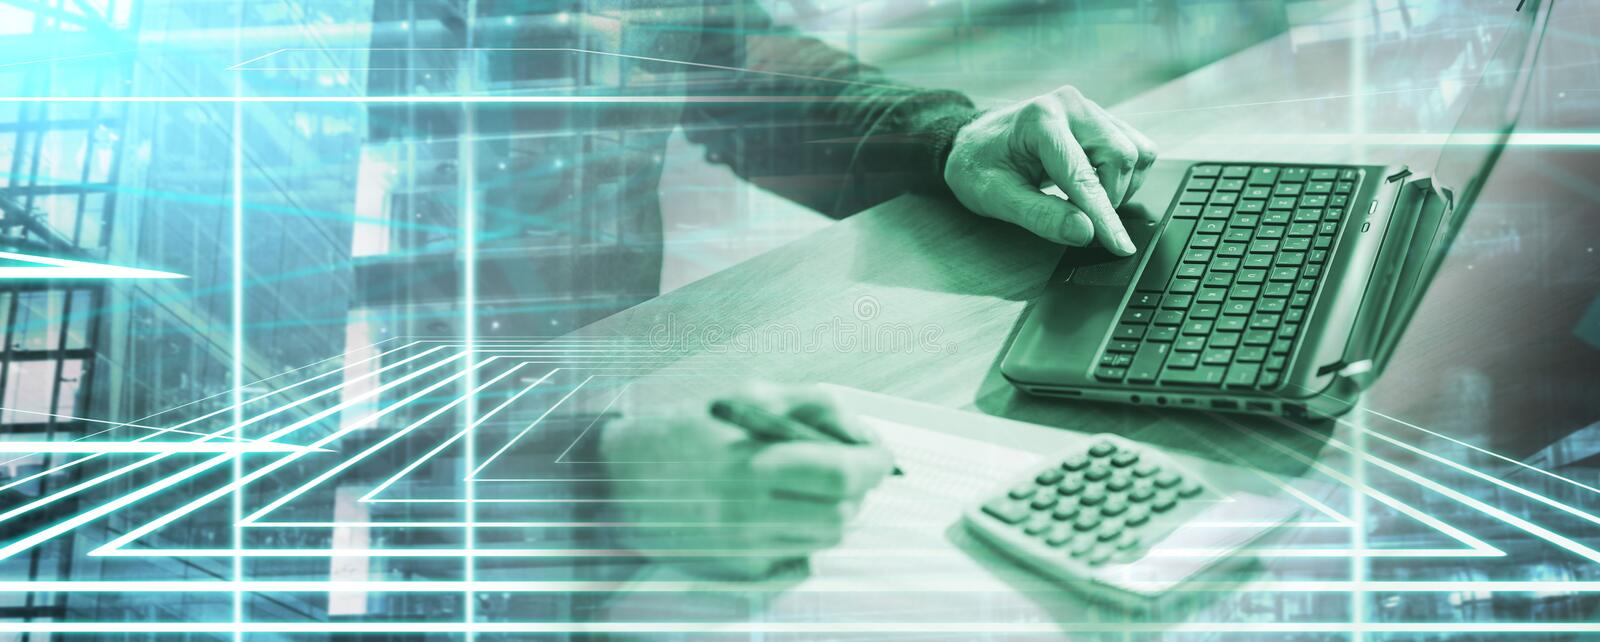 Accountant working on laptop; multiple exposure royalty free stock photo